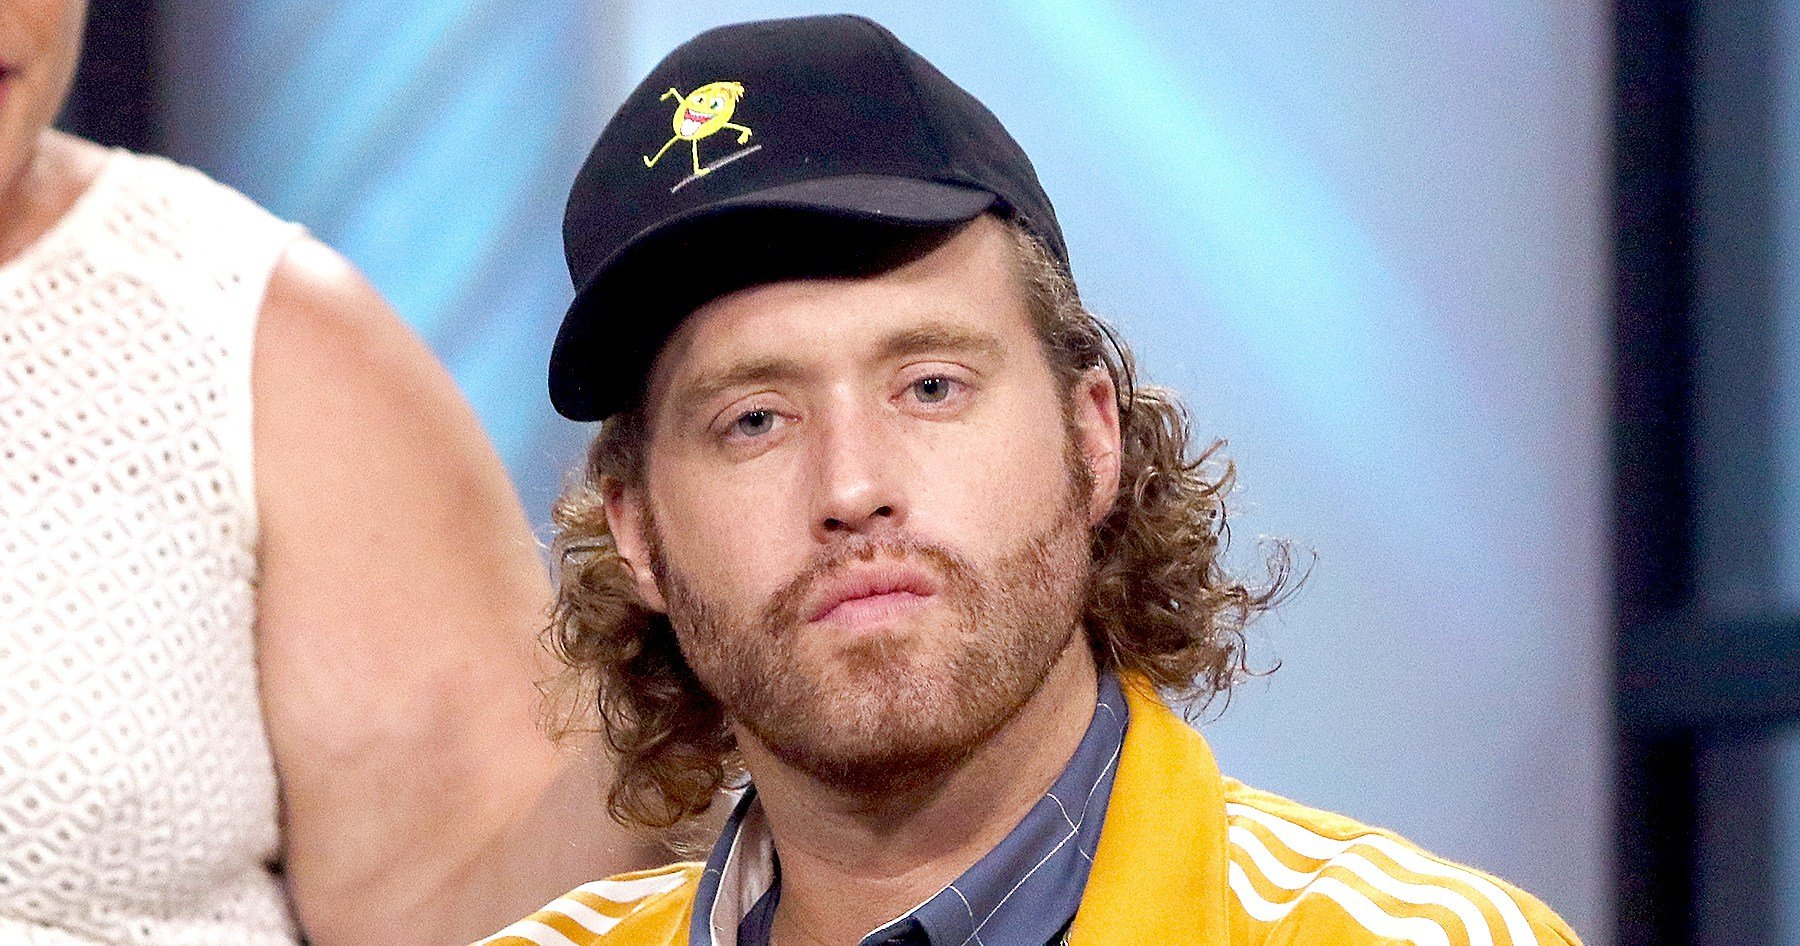 T.J. Miller: Actress Who Accused Me of Bullying Was 'Difficult to Work With'